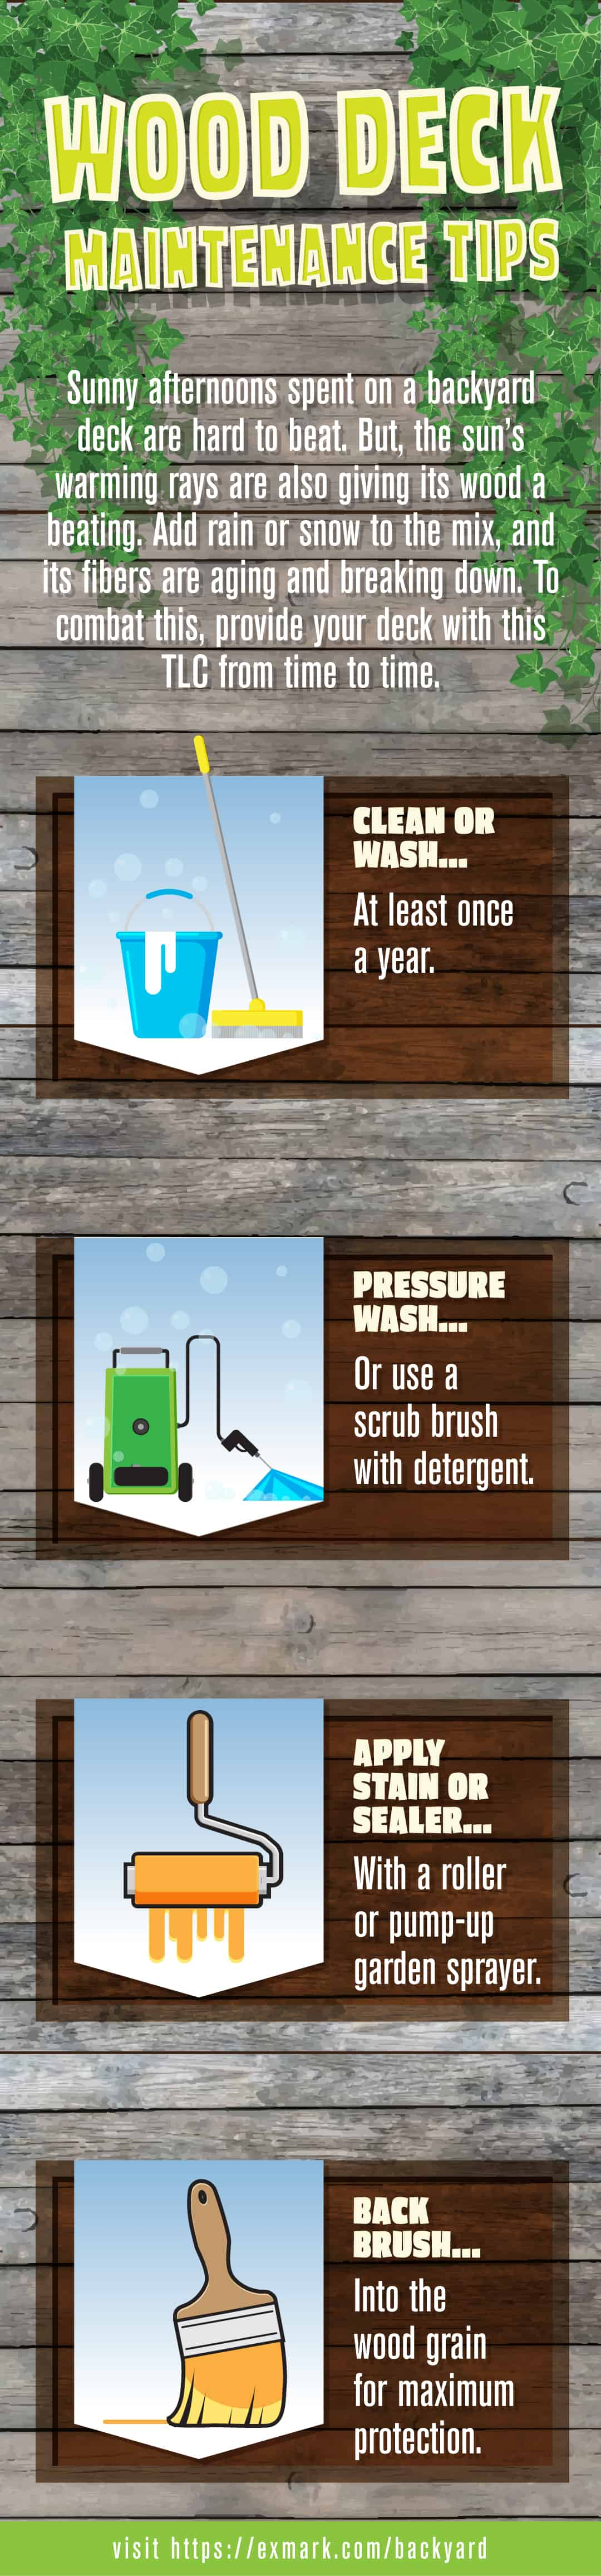 Wood Deck Maintenance Tips infographic